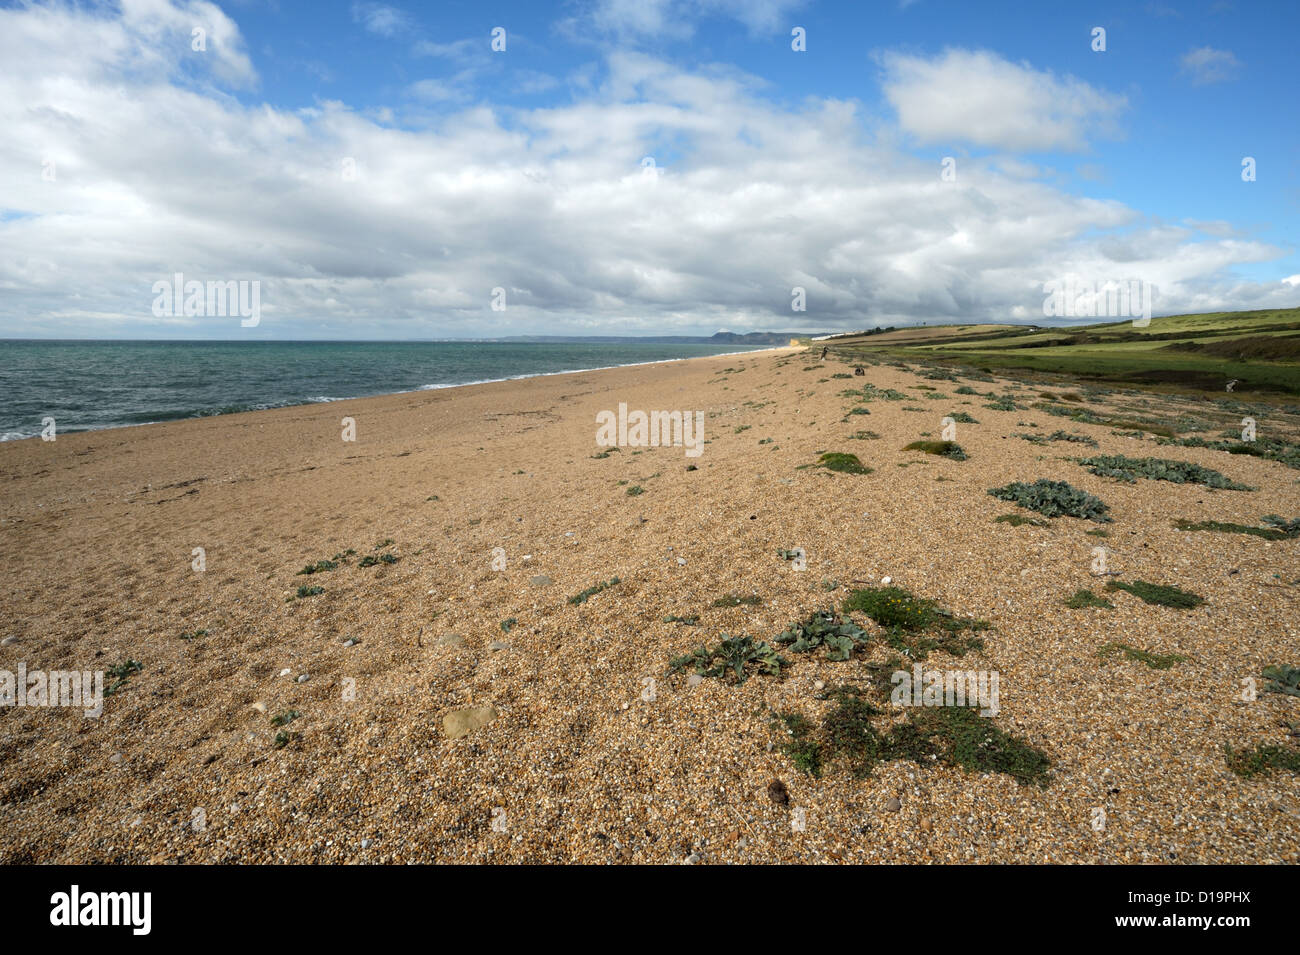 Chesil beach and sparse vegetation of kale, samphire and campion on a blustery fine autumn day - Stock Image